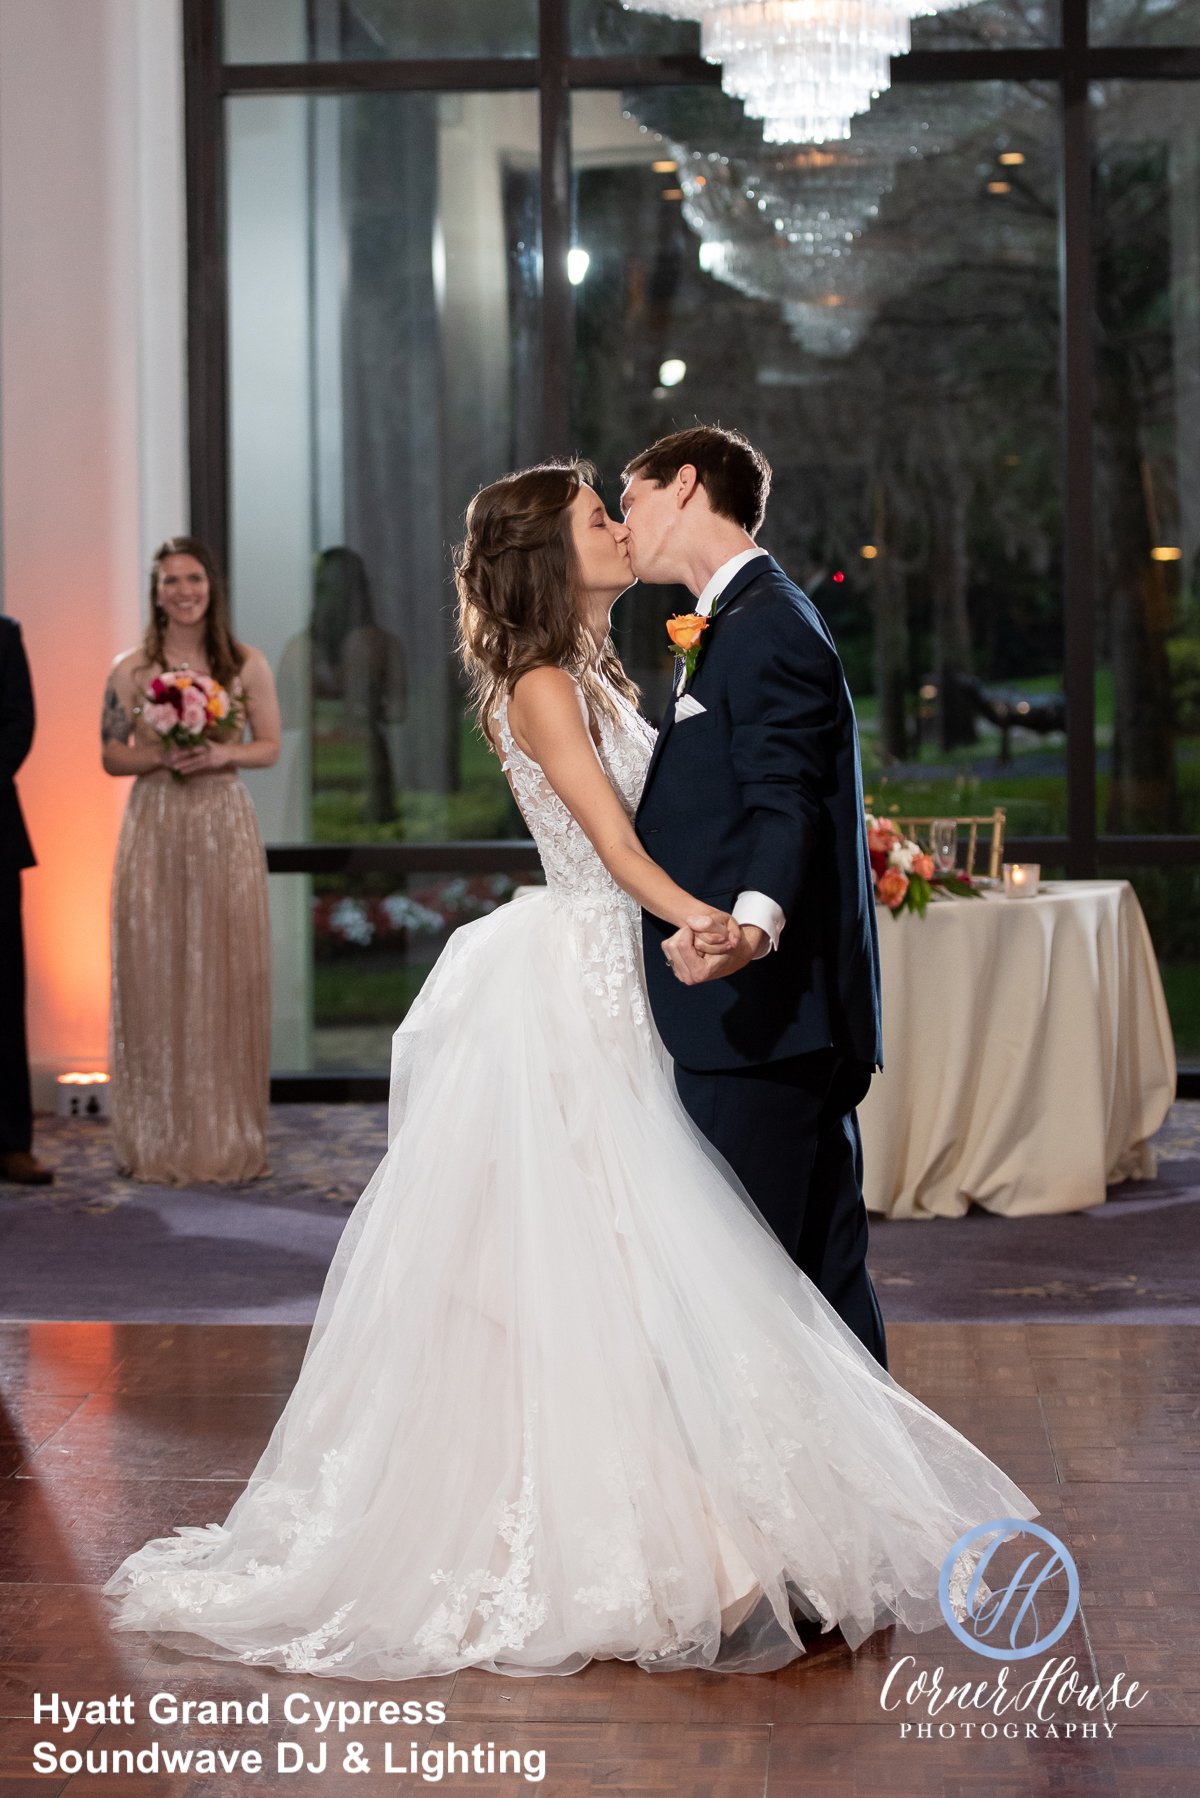 hyatt grand cypress - orlando wedding venue - orlando wedding dj - orlando dj